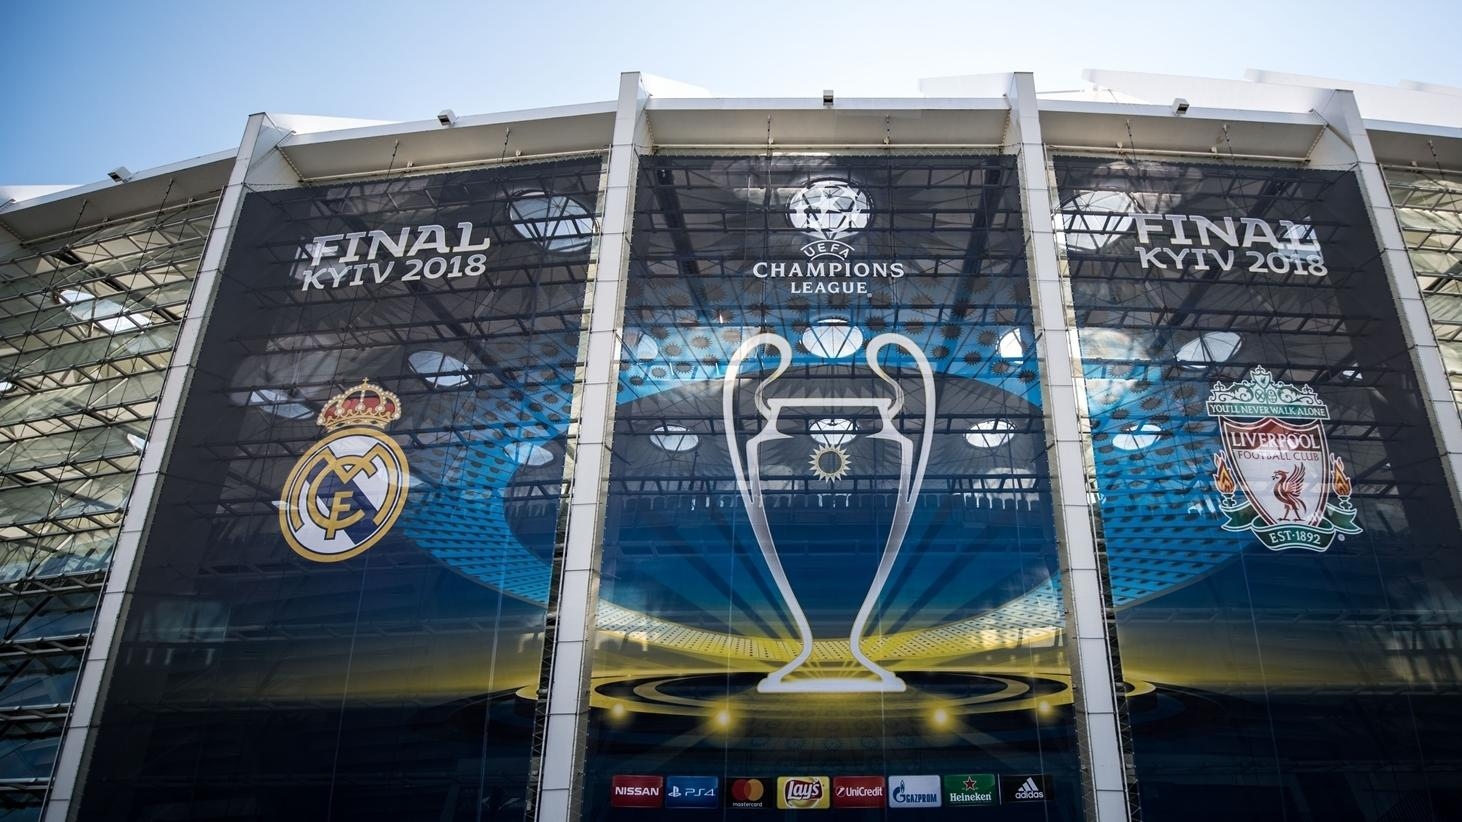 champions league final preview real madrid v liverpool uefa champions league uefa com champions league final preview real